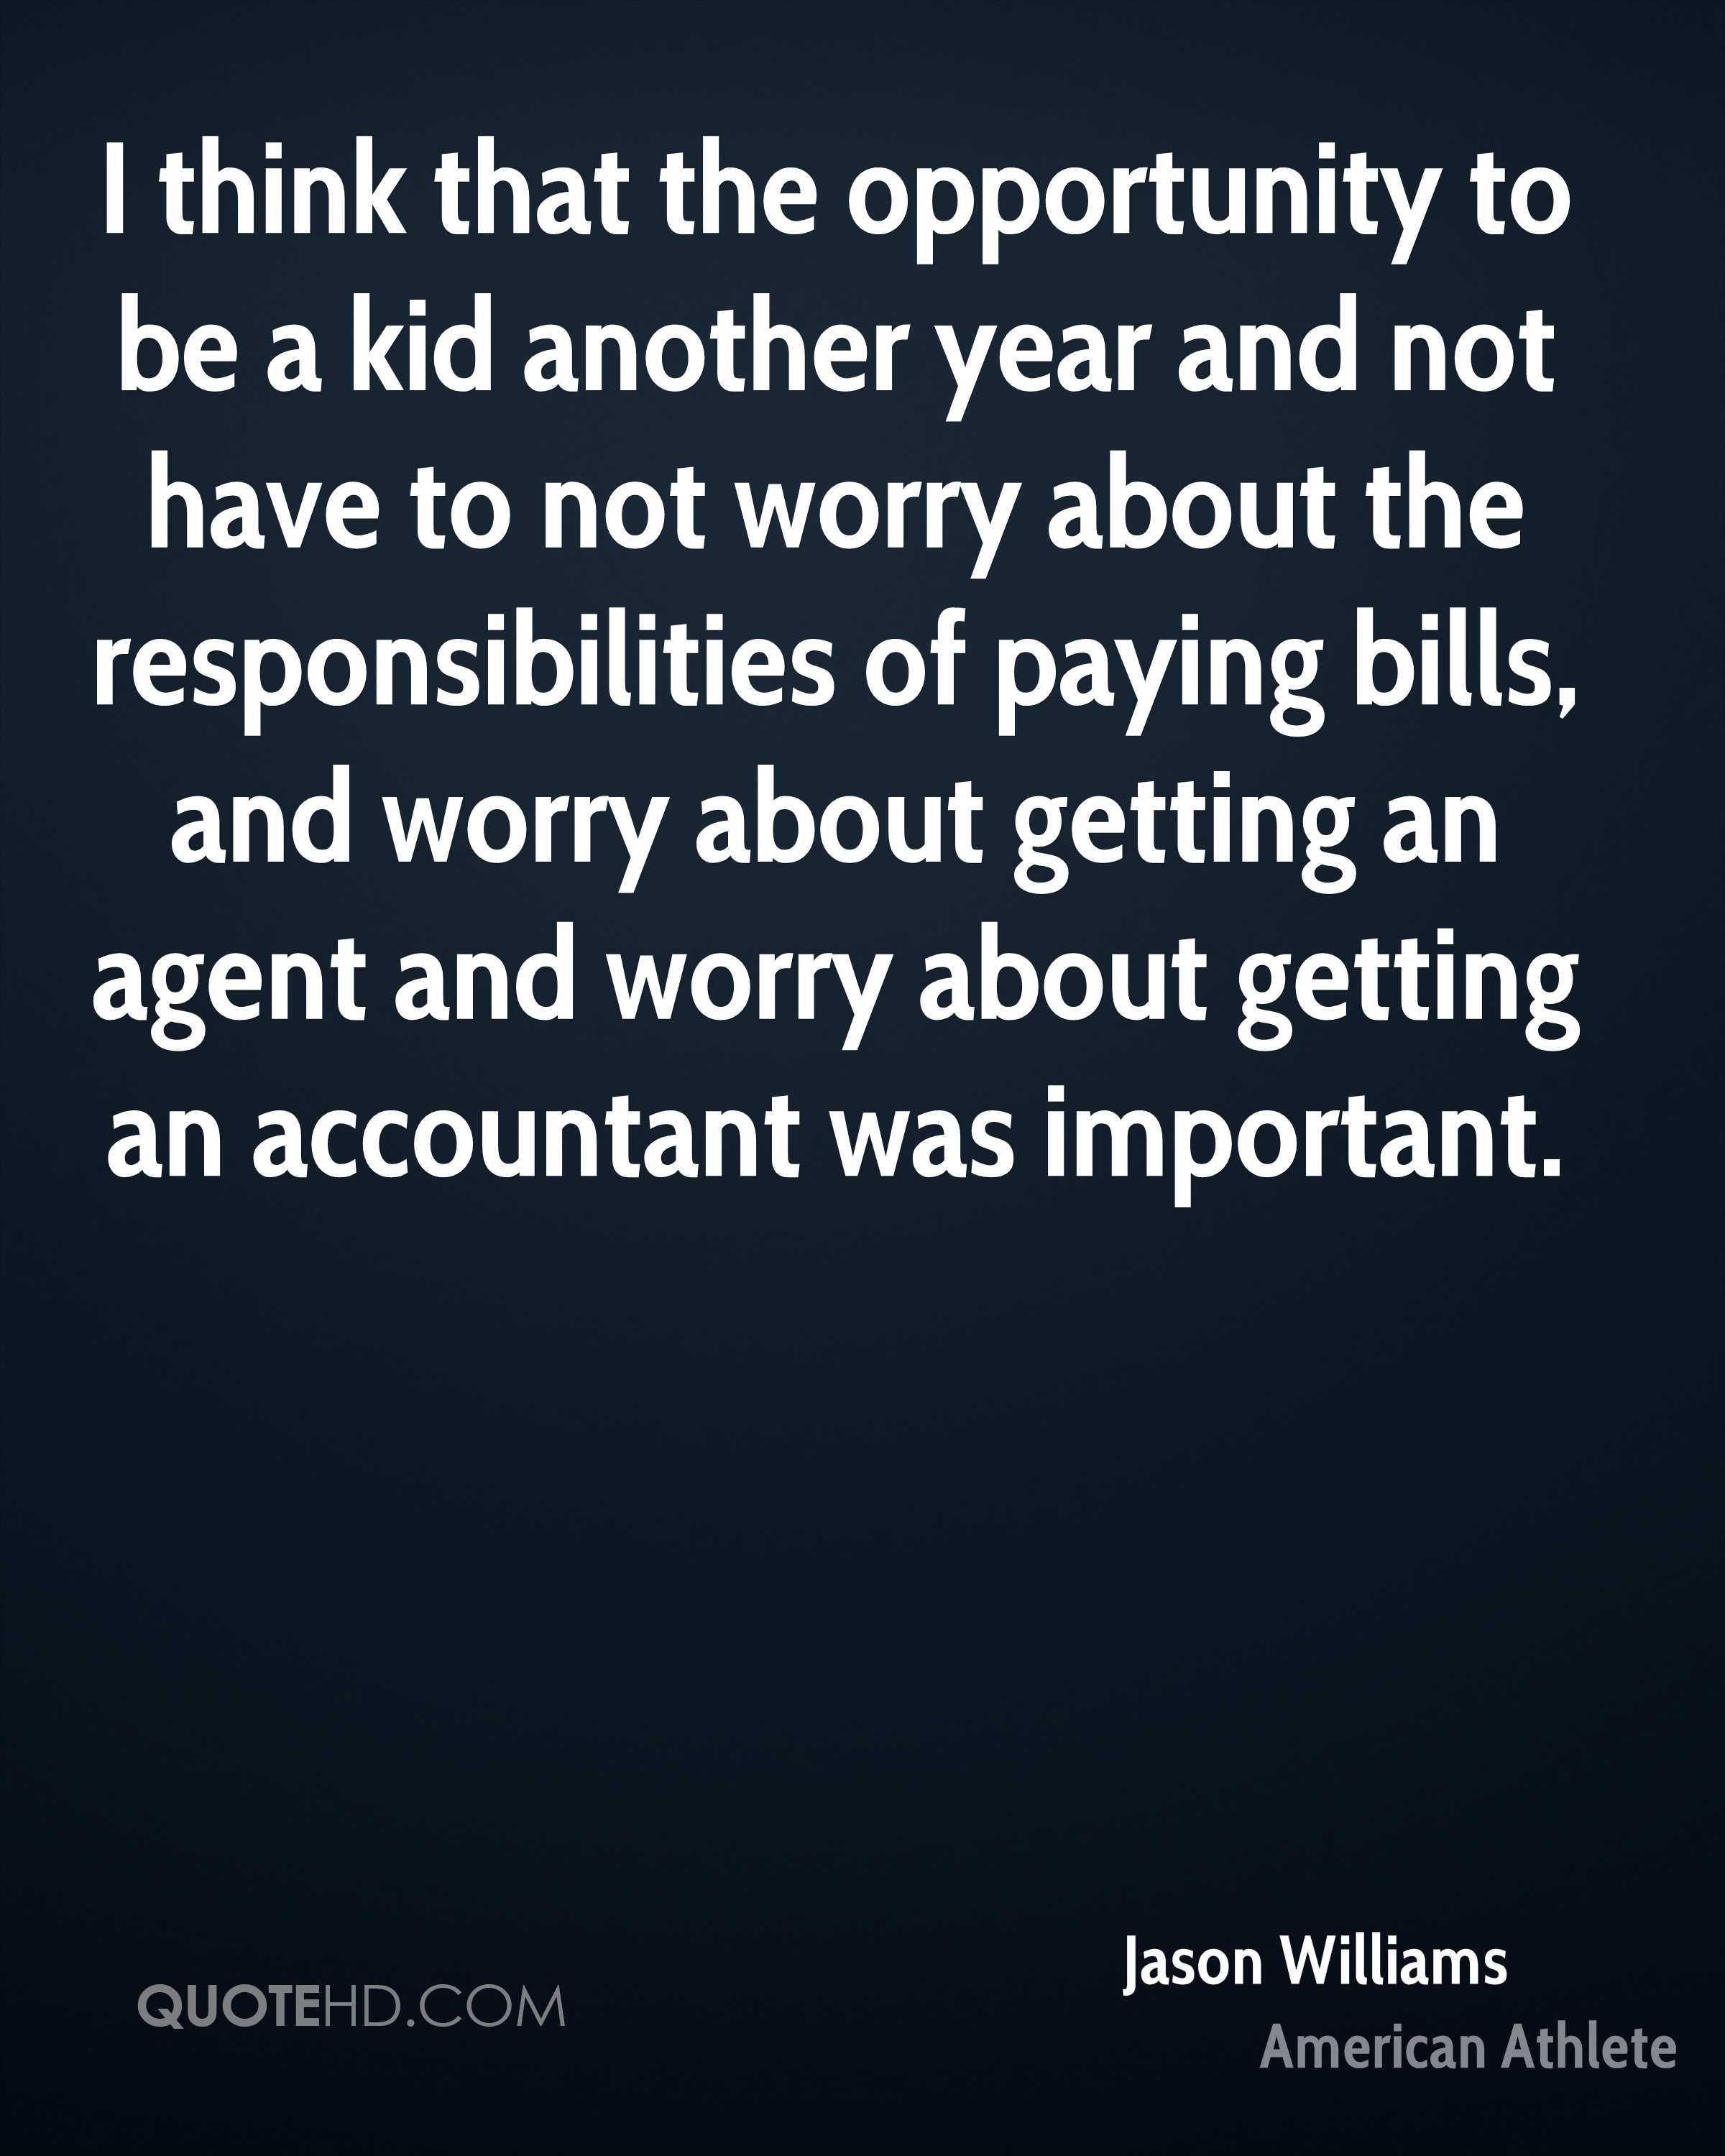 I think that the opportunity to be a kid another year and not have to not worry about the responsibilities of paying bills, and worry about getting an agent and worry about getting an accountant was important.